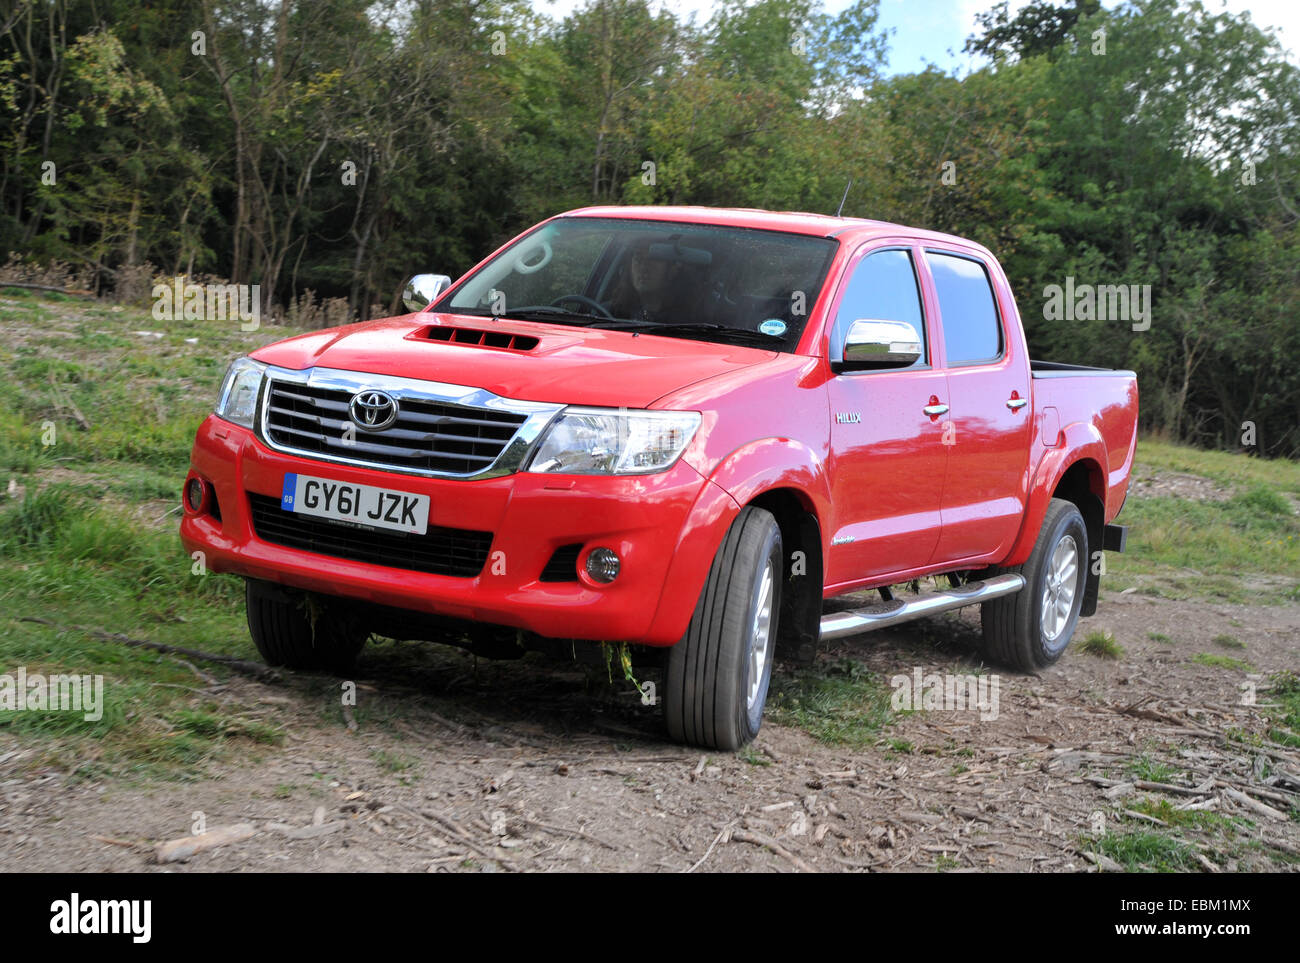 2012 toyota hilux invincible 4 wheel drive pick up truck driving off road stock image